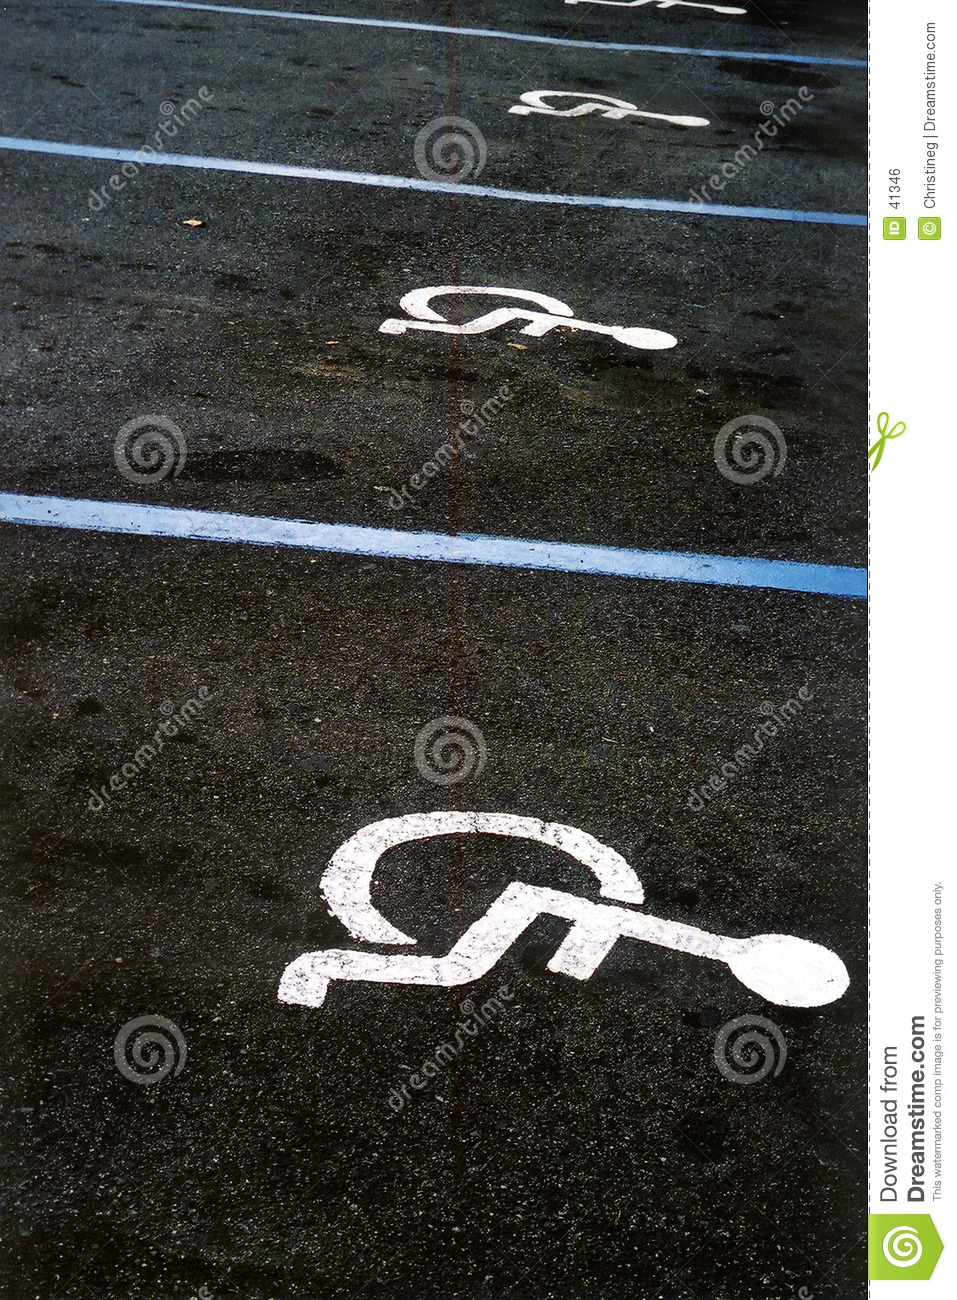 Handicapped parking perspective